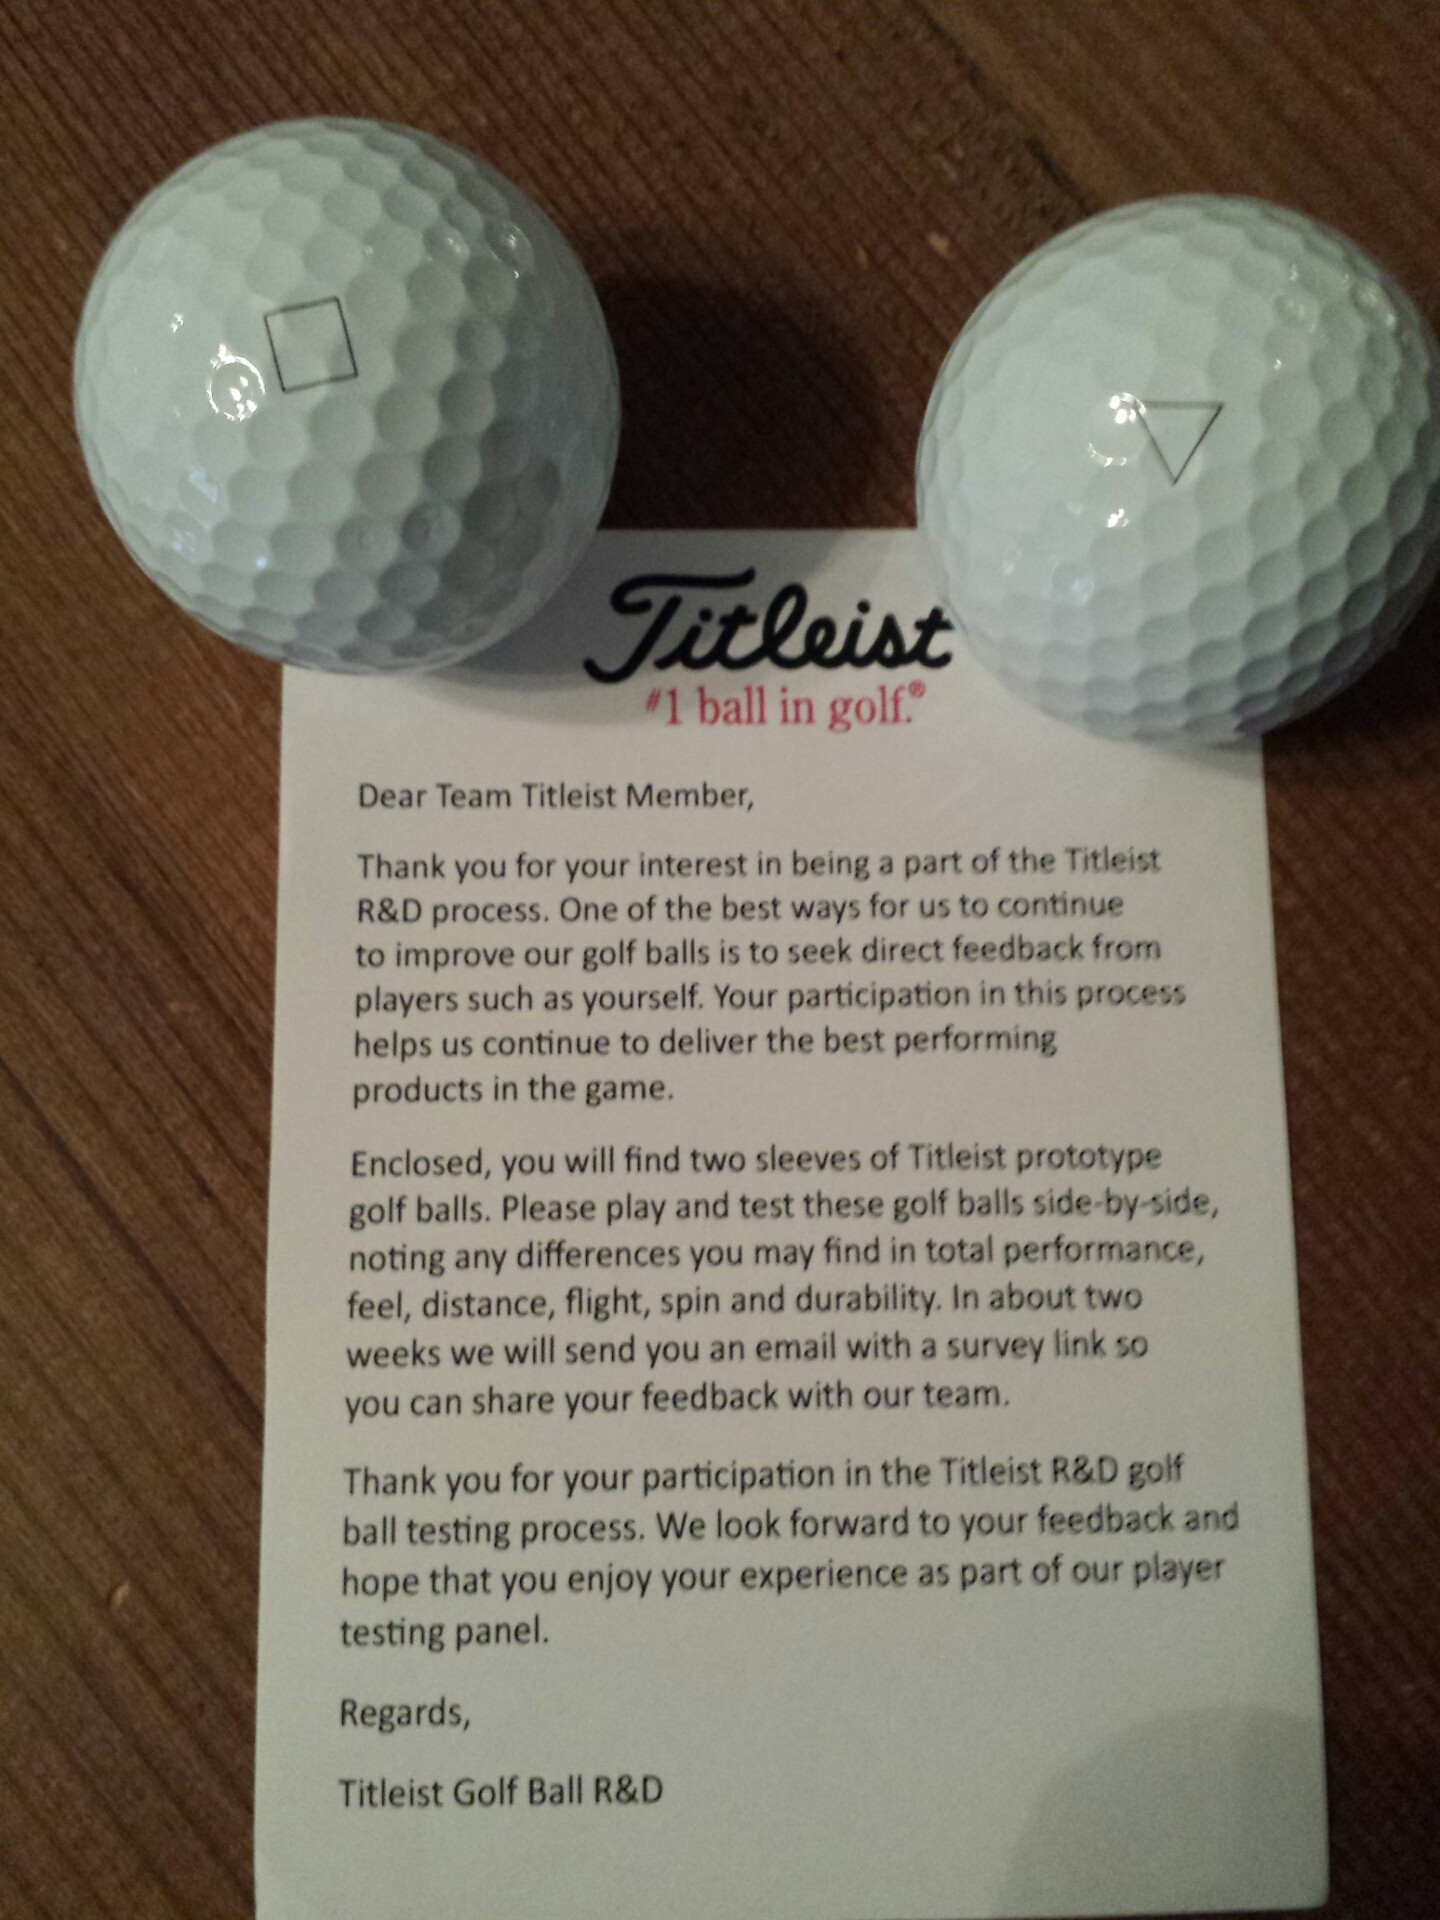 Res: 1440x1920, Got two sleeves of these Titleist prototype golf balls in the mail today.